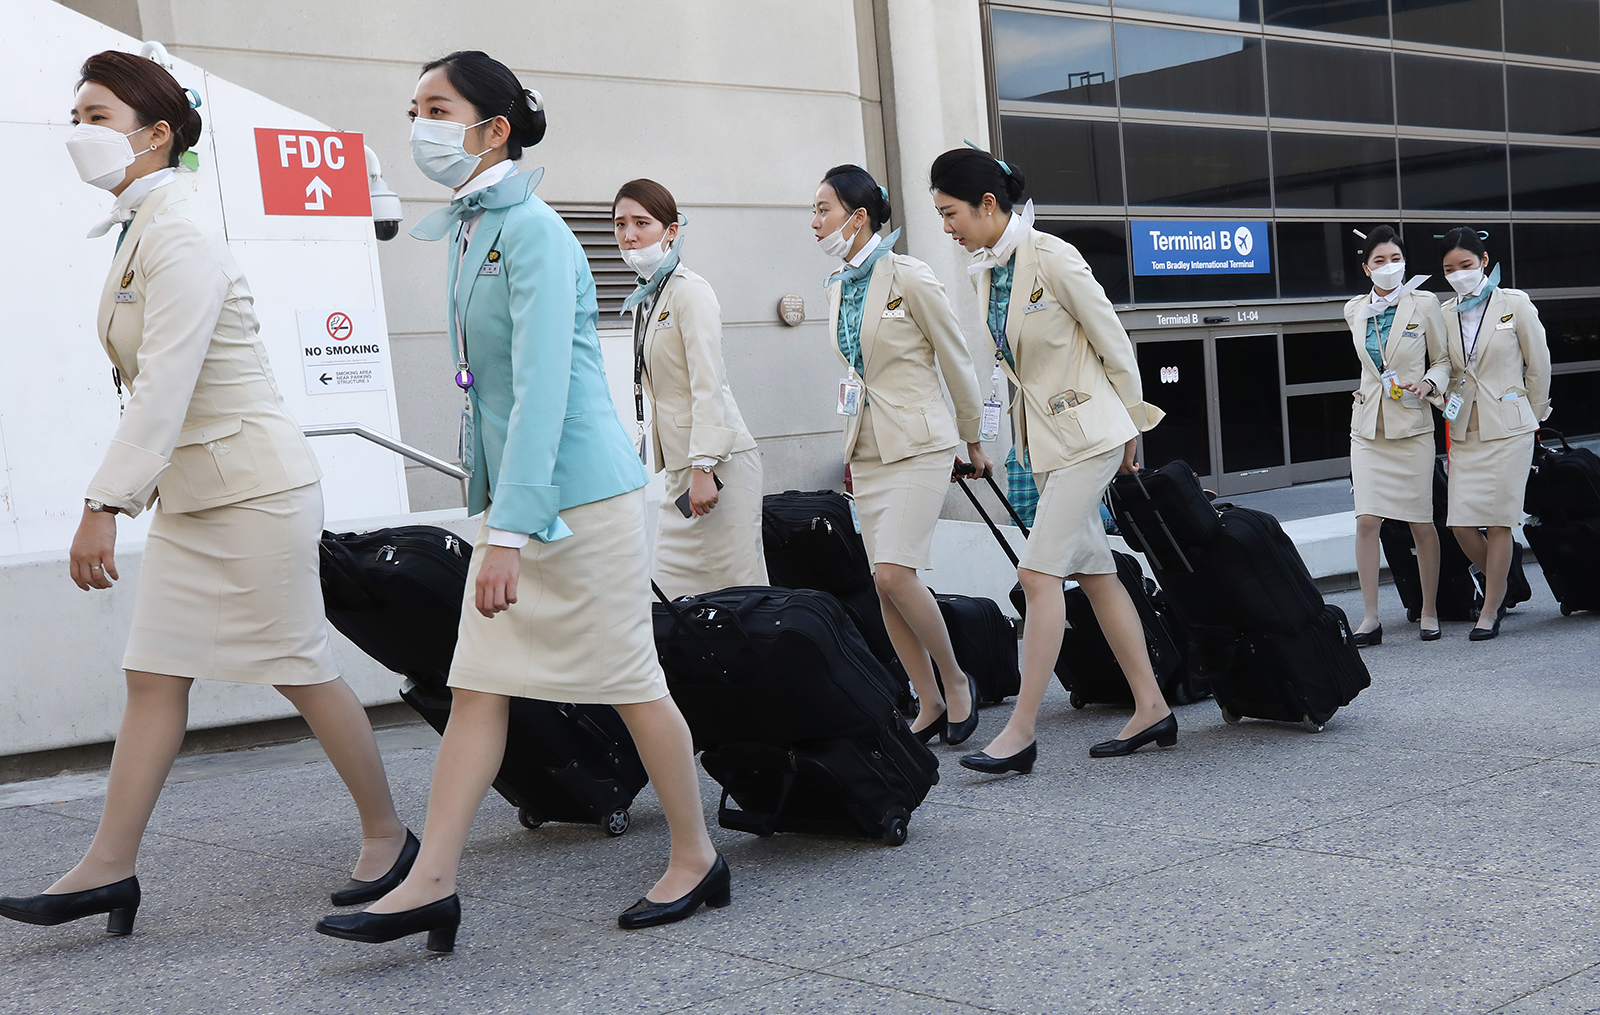 A flight crew from Korean Air, many wearing protective masks, depart the international terminal after arriving at Los Angeles International Airport on February 28, in Los Angeles.